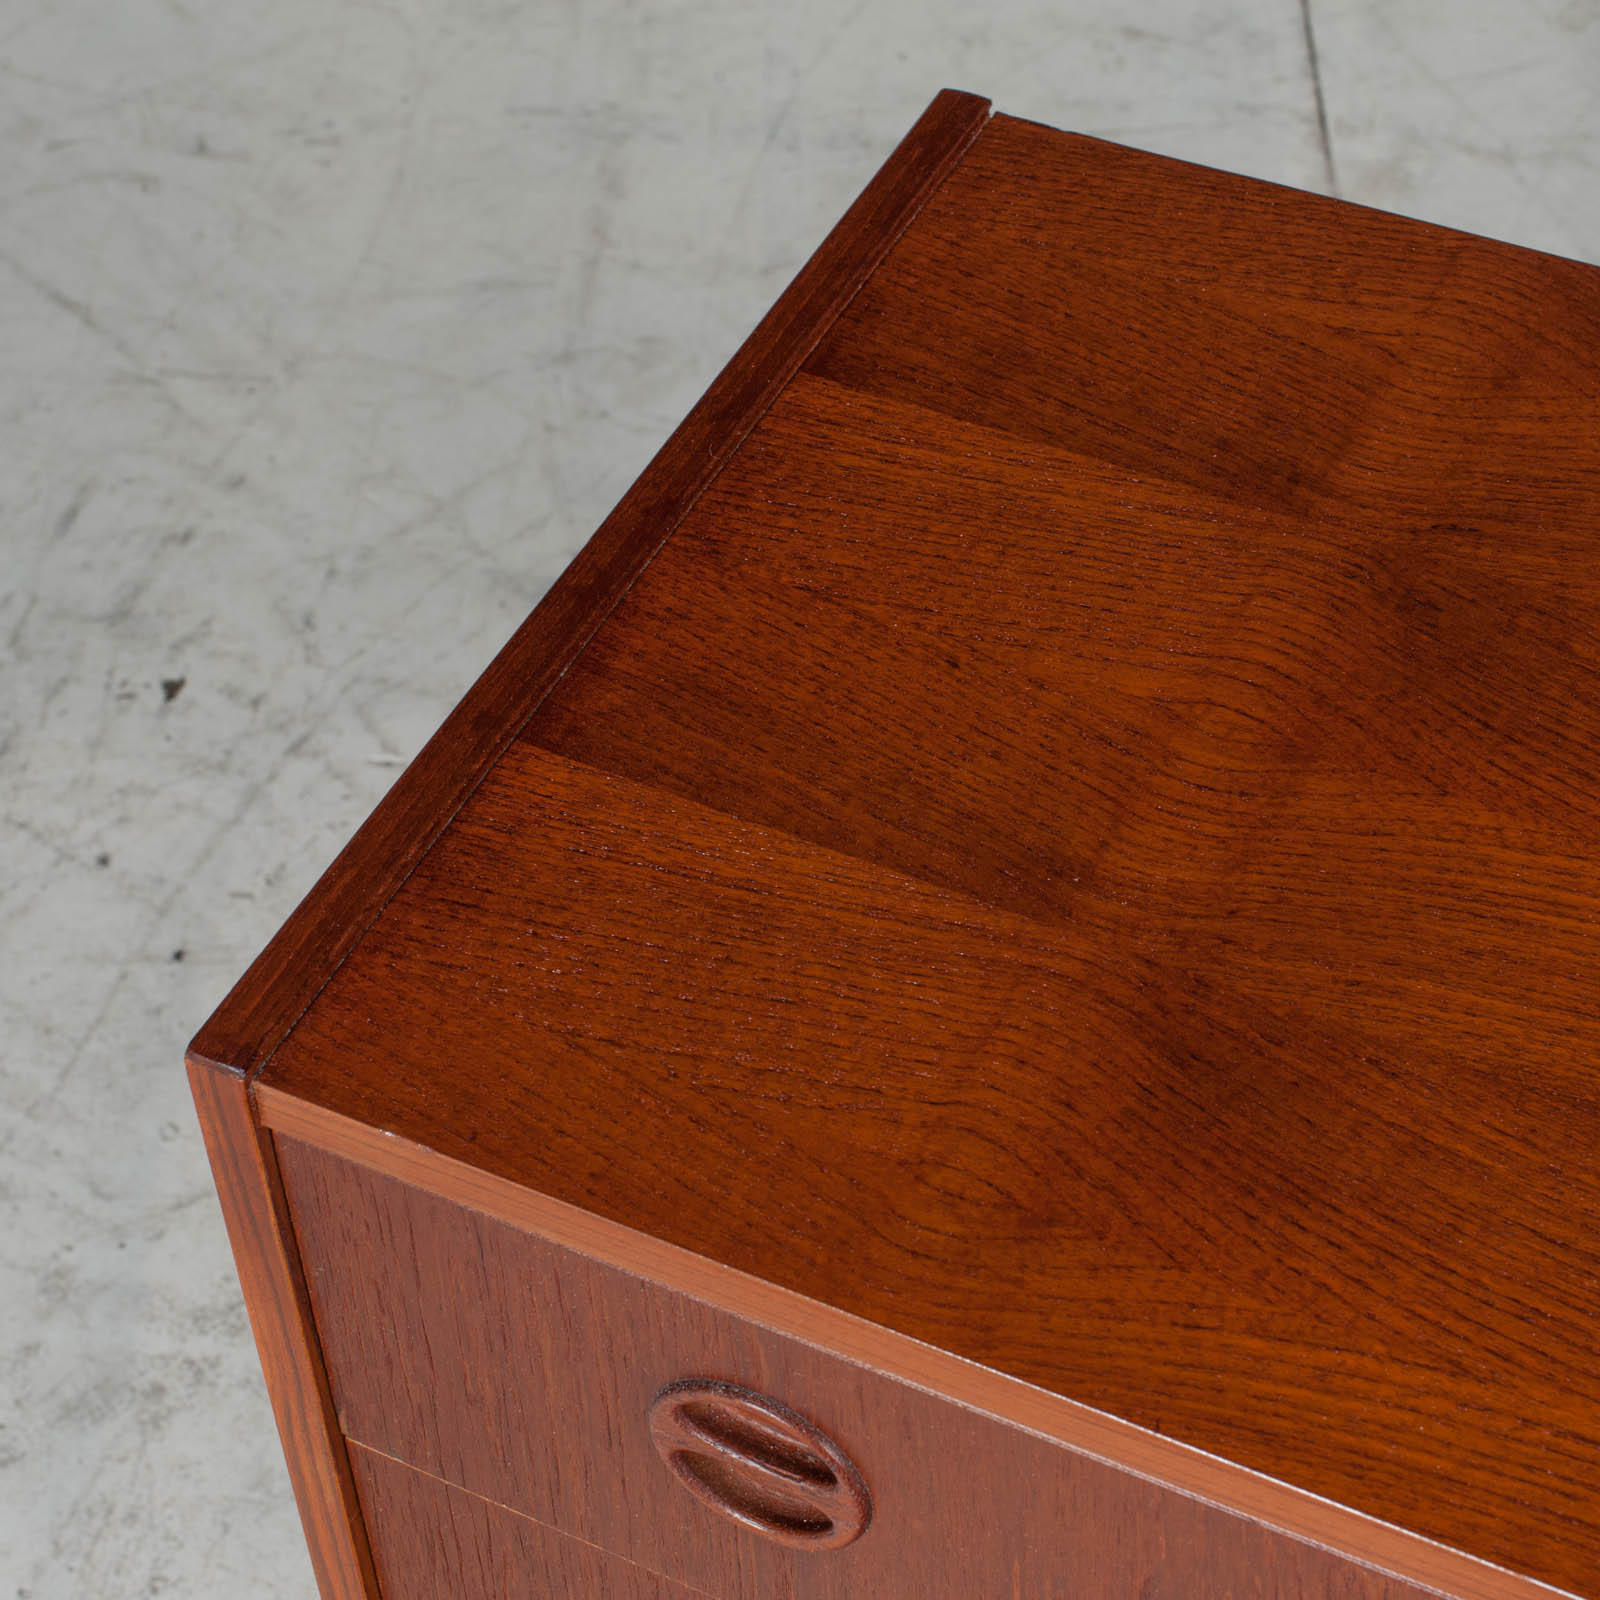 Chest Of Drawers In Teak, 1960s, Denmark 9